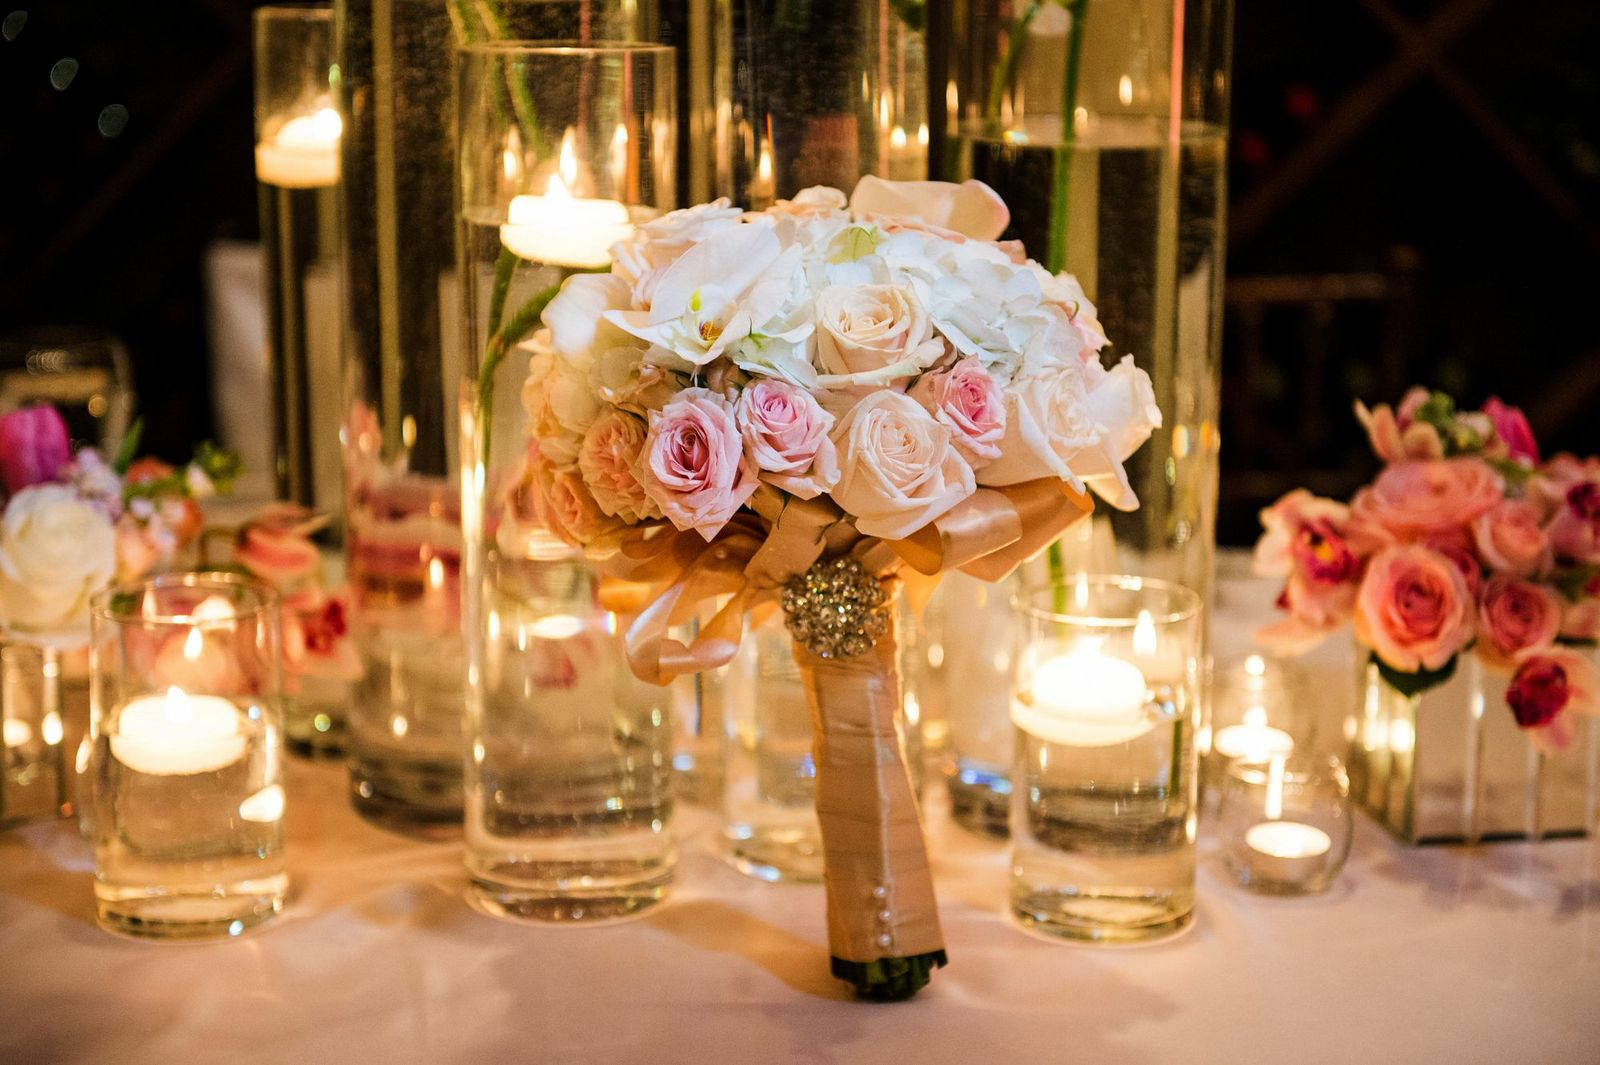 wedding-reception-ideas-30-04172014nz